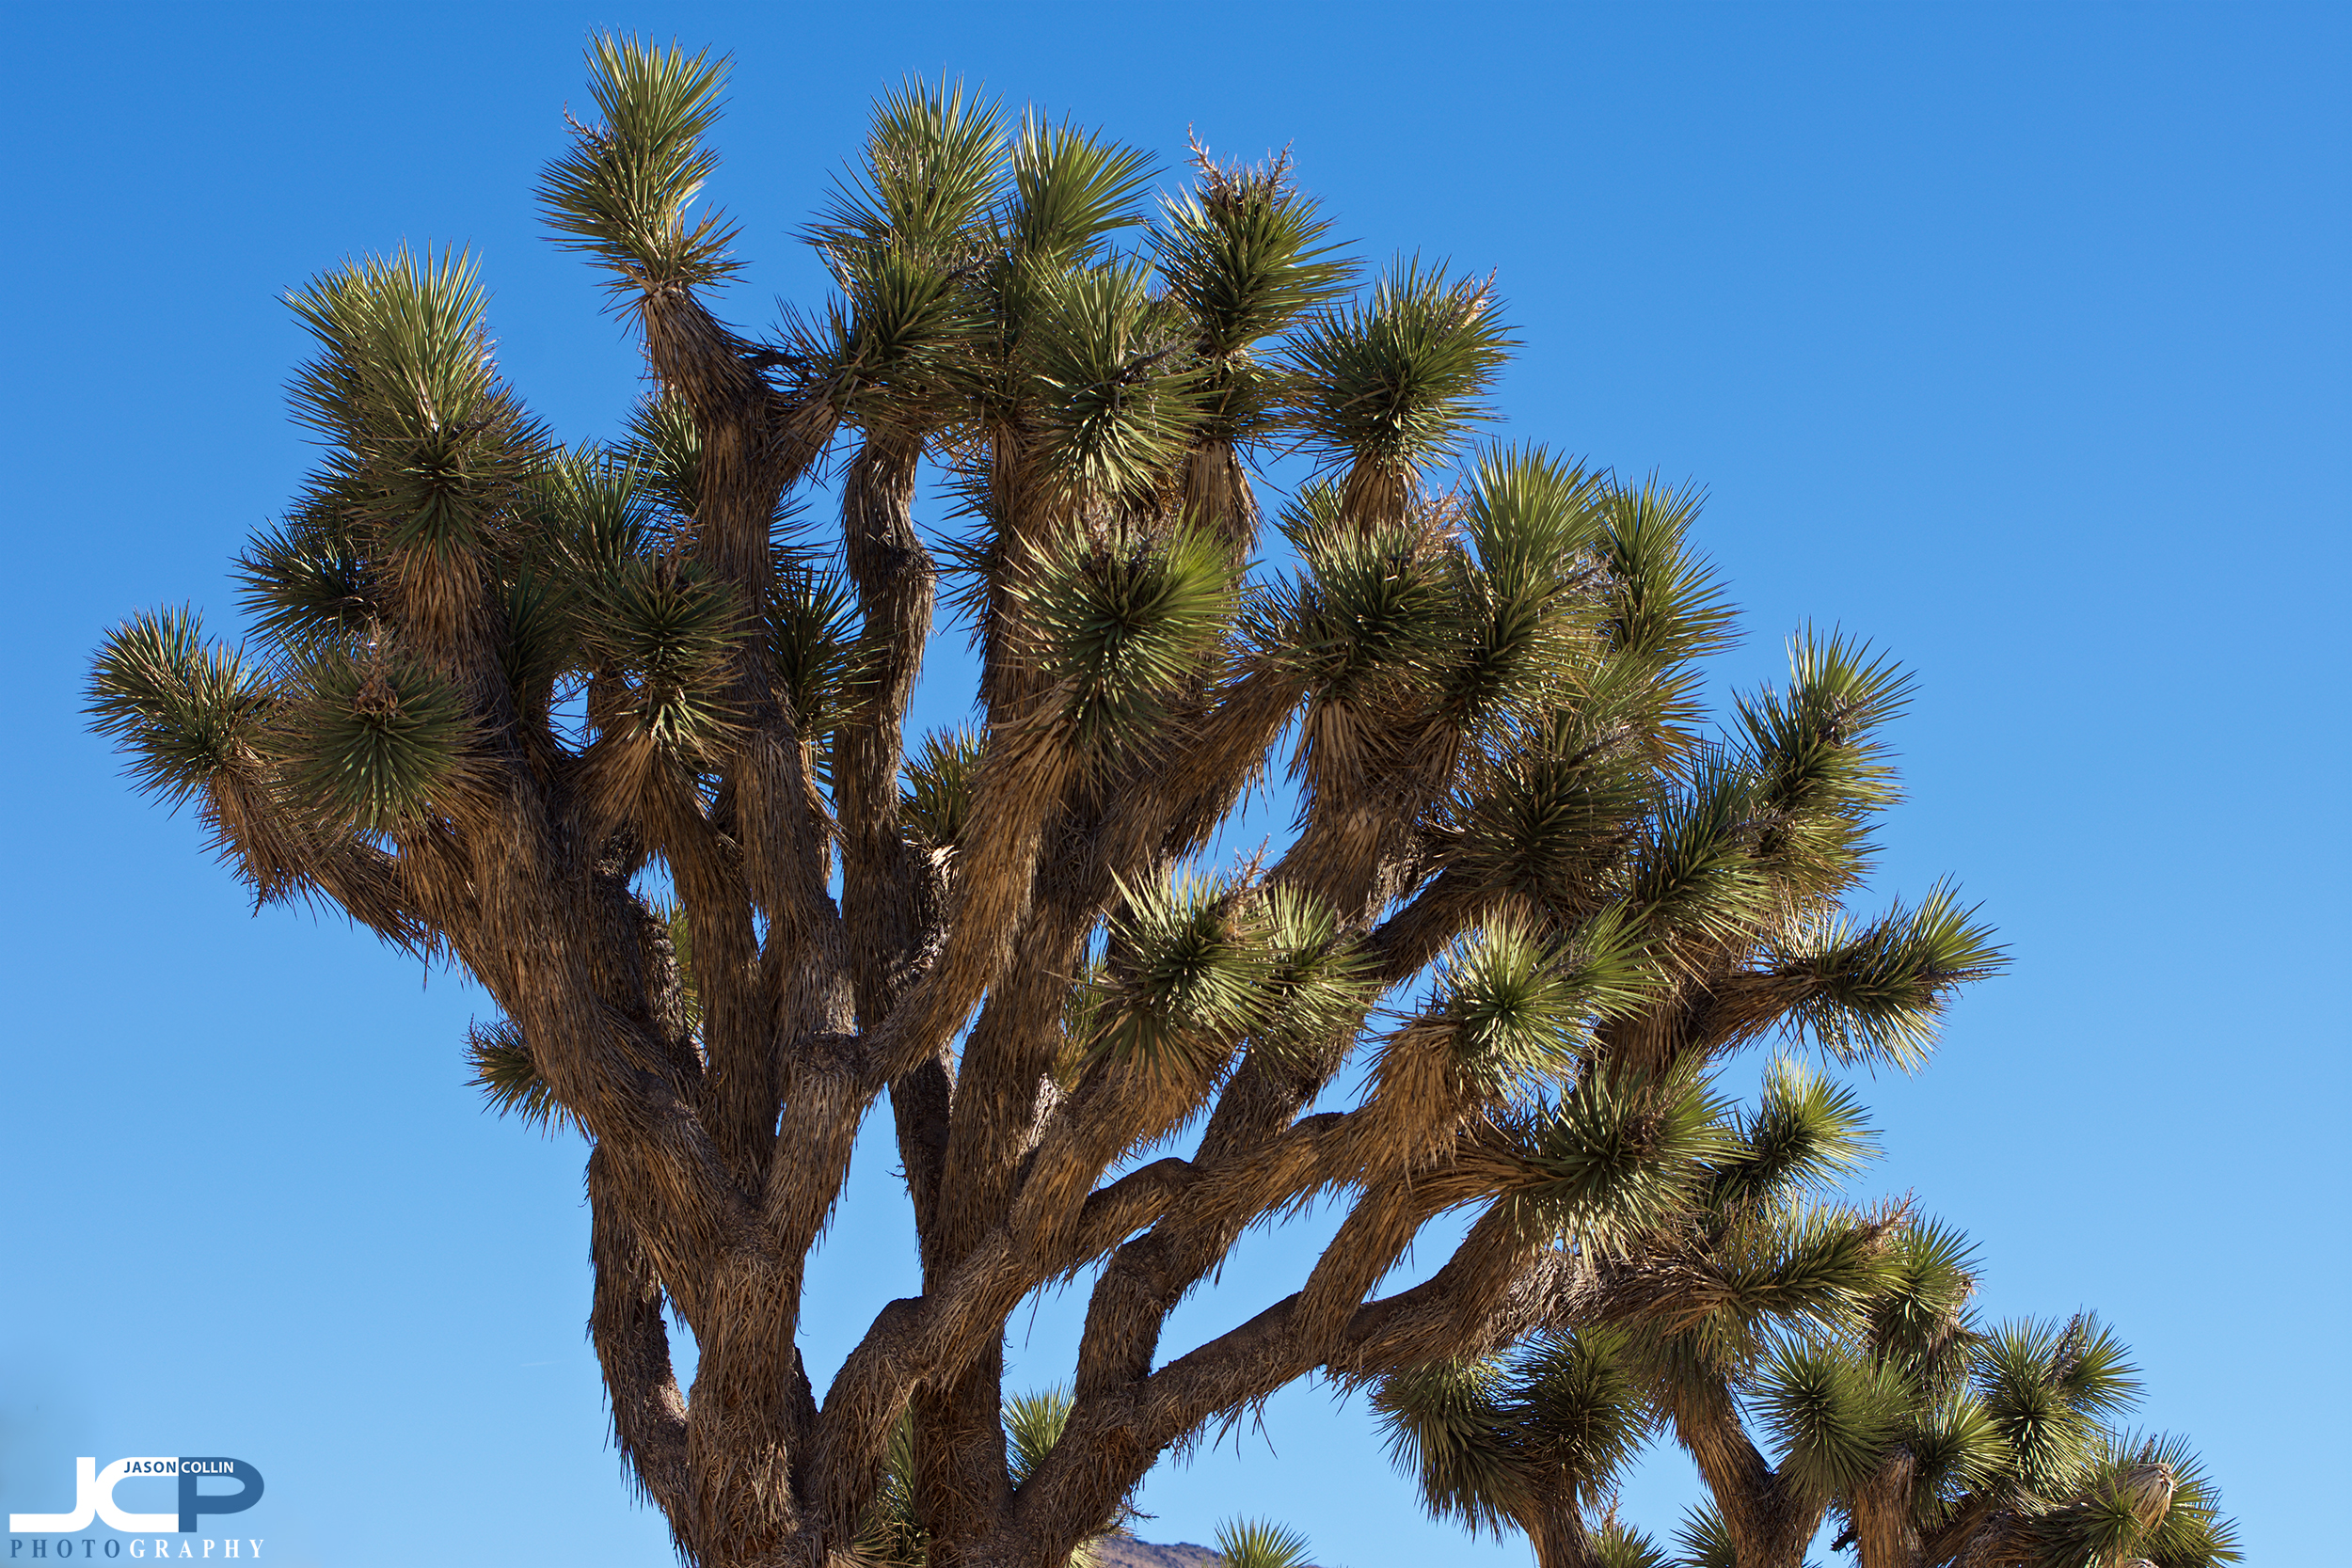 In case you were wondering, yes, joshua tree needles are sharp!